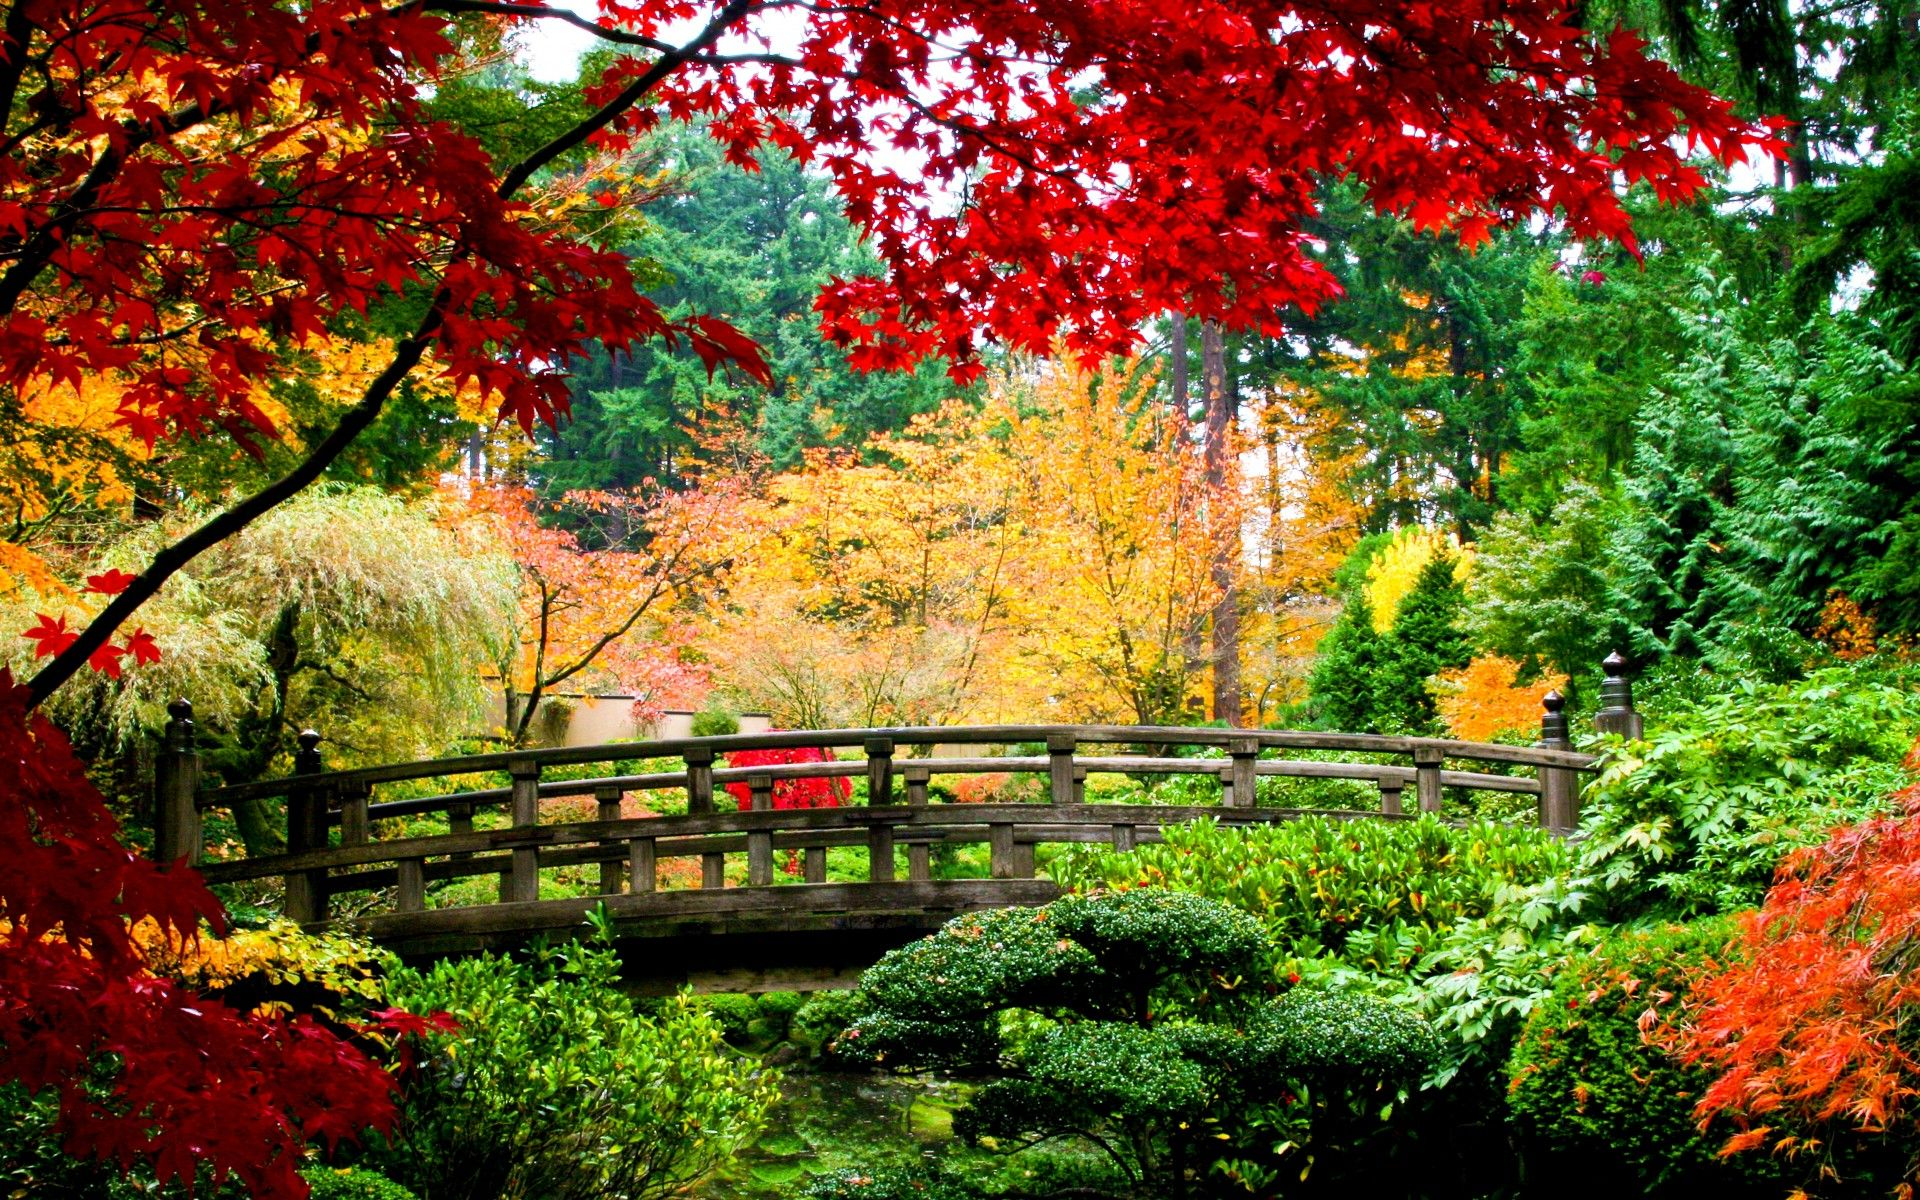 Japanese Style Garden Bridges Garden Wallpapers High Quality Download Free Hd Wallpapers